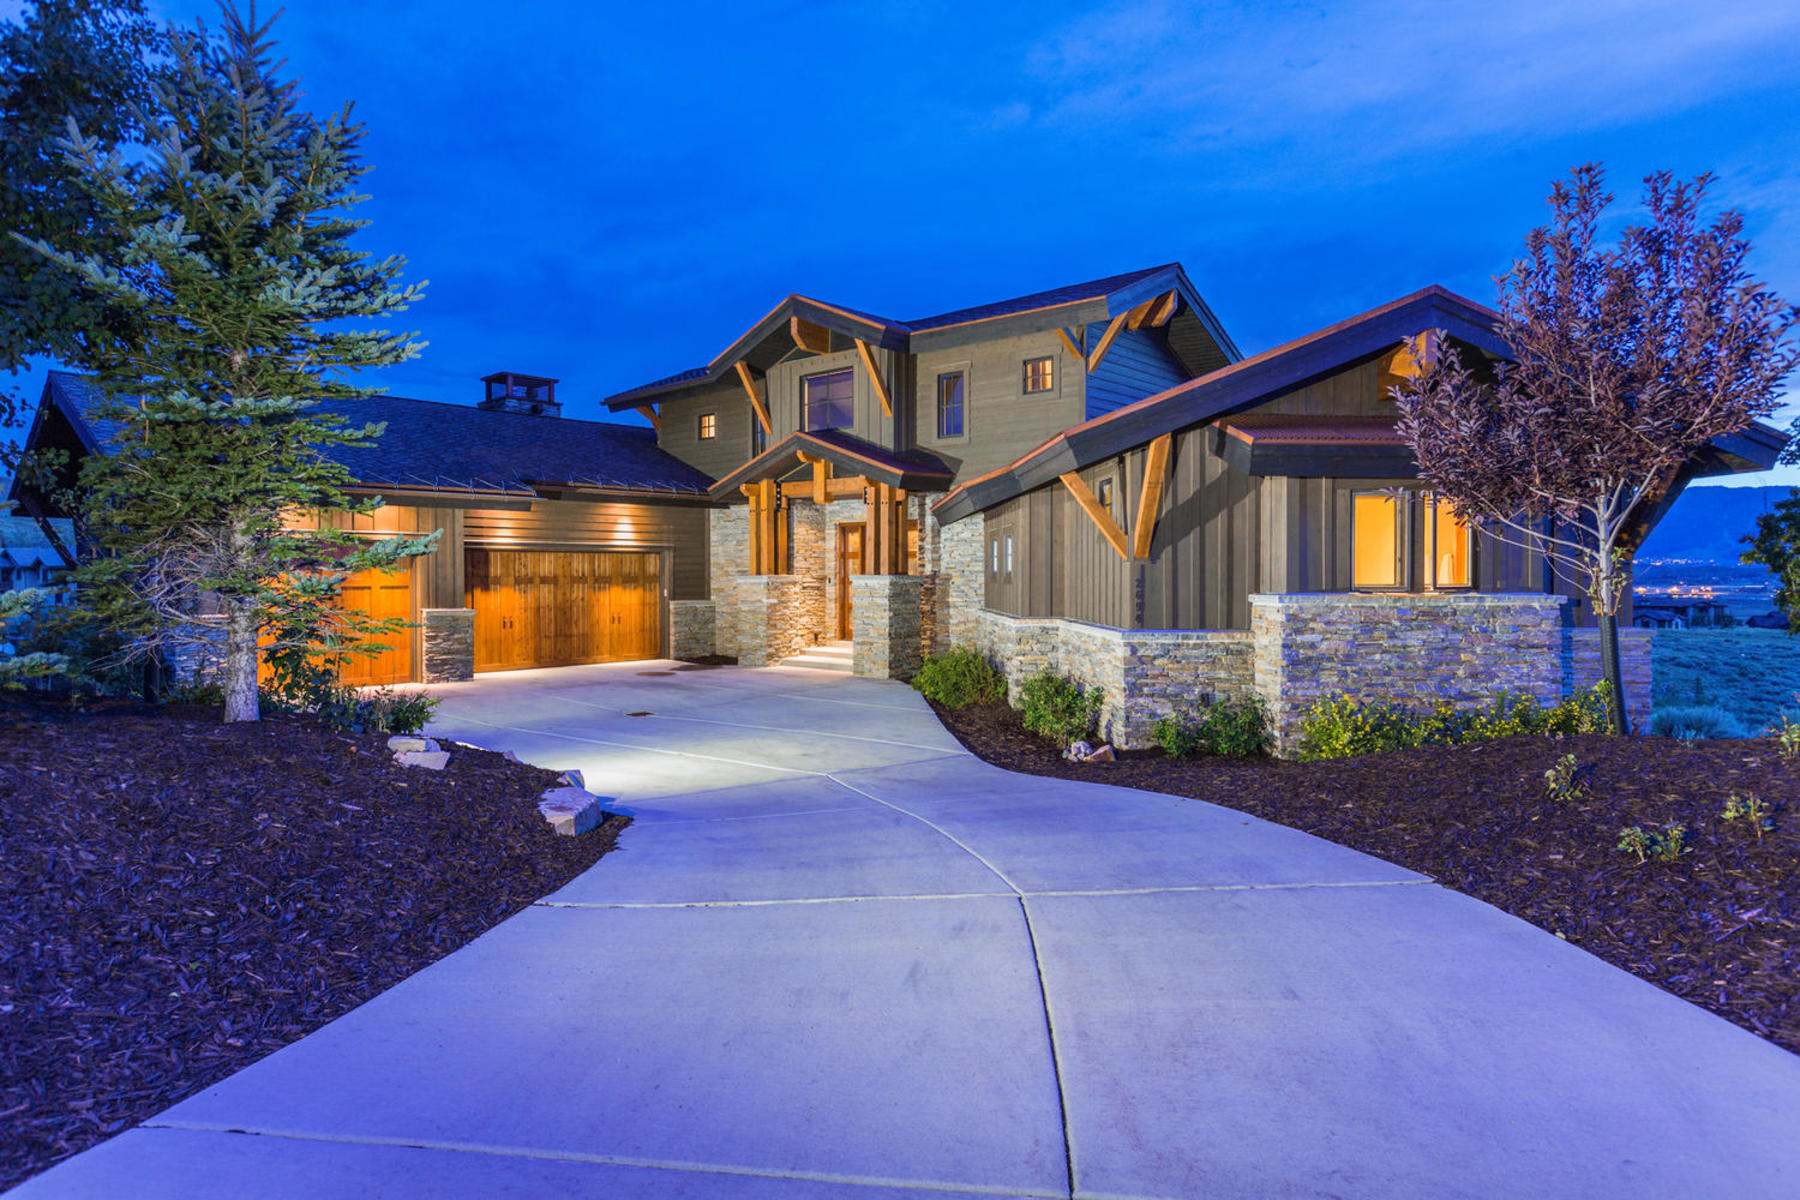 Single Family Home for Sale at Showcase Promontory Home with Spectacular Ski Views 2694 E Westview Trl Park City, Utah, 84098 United States